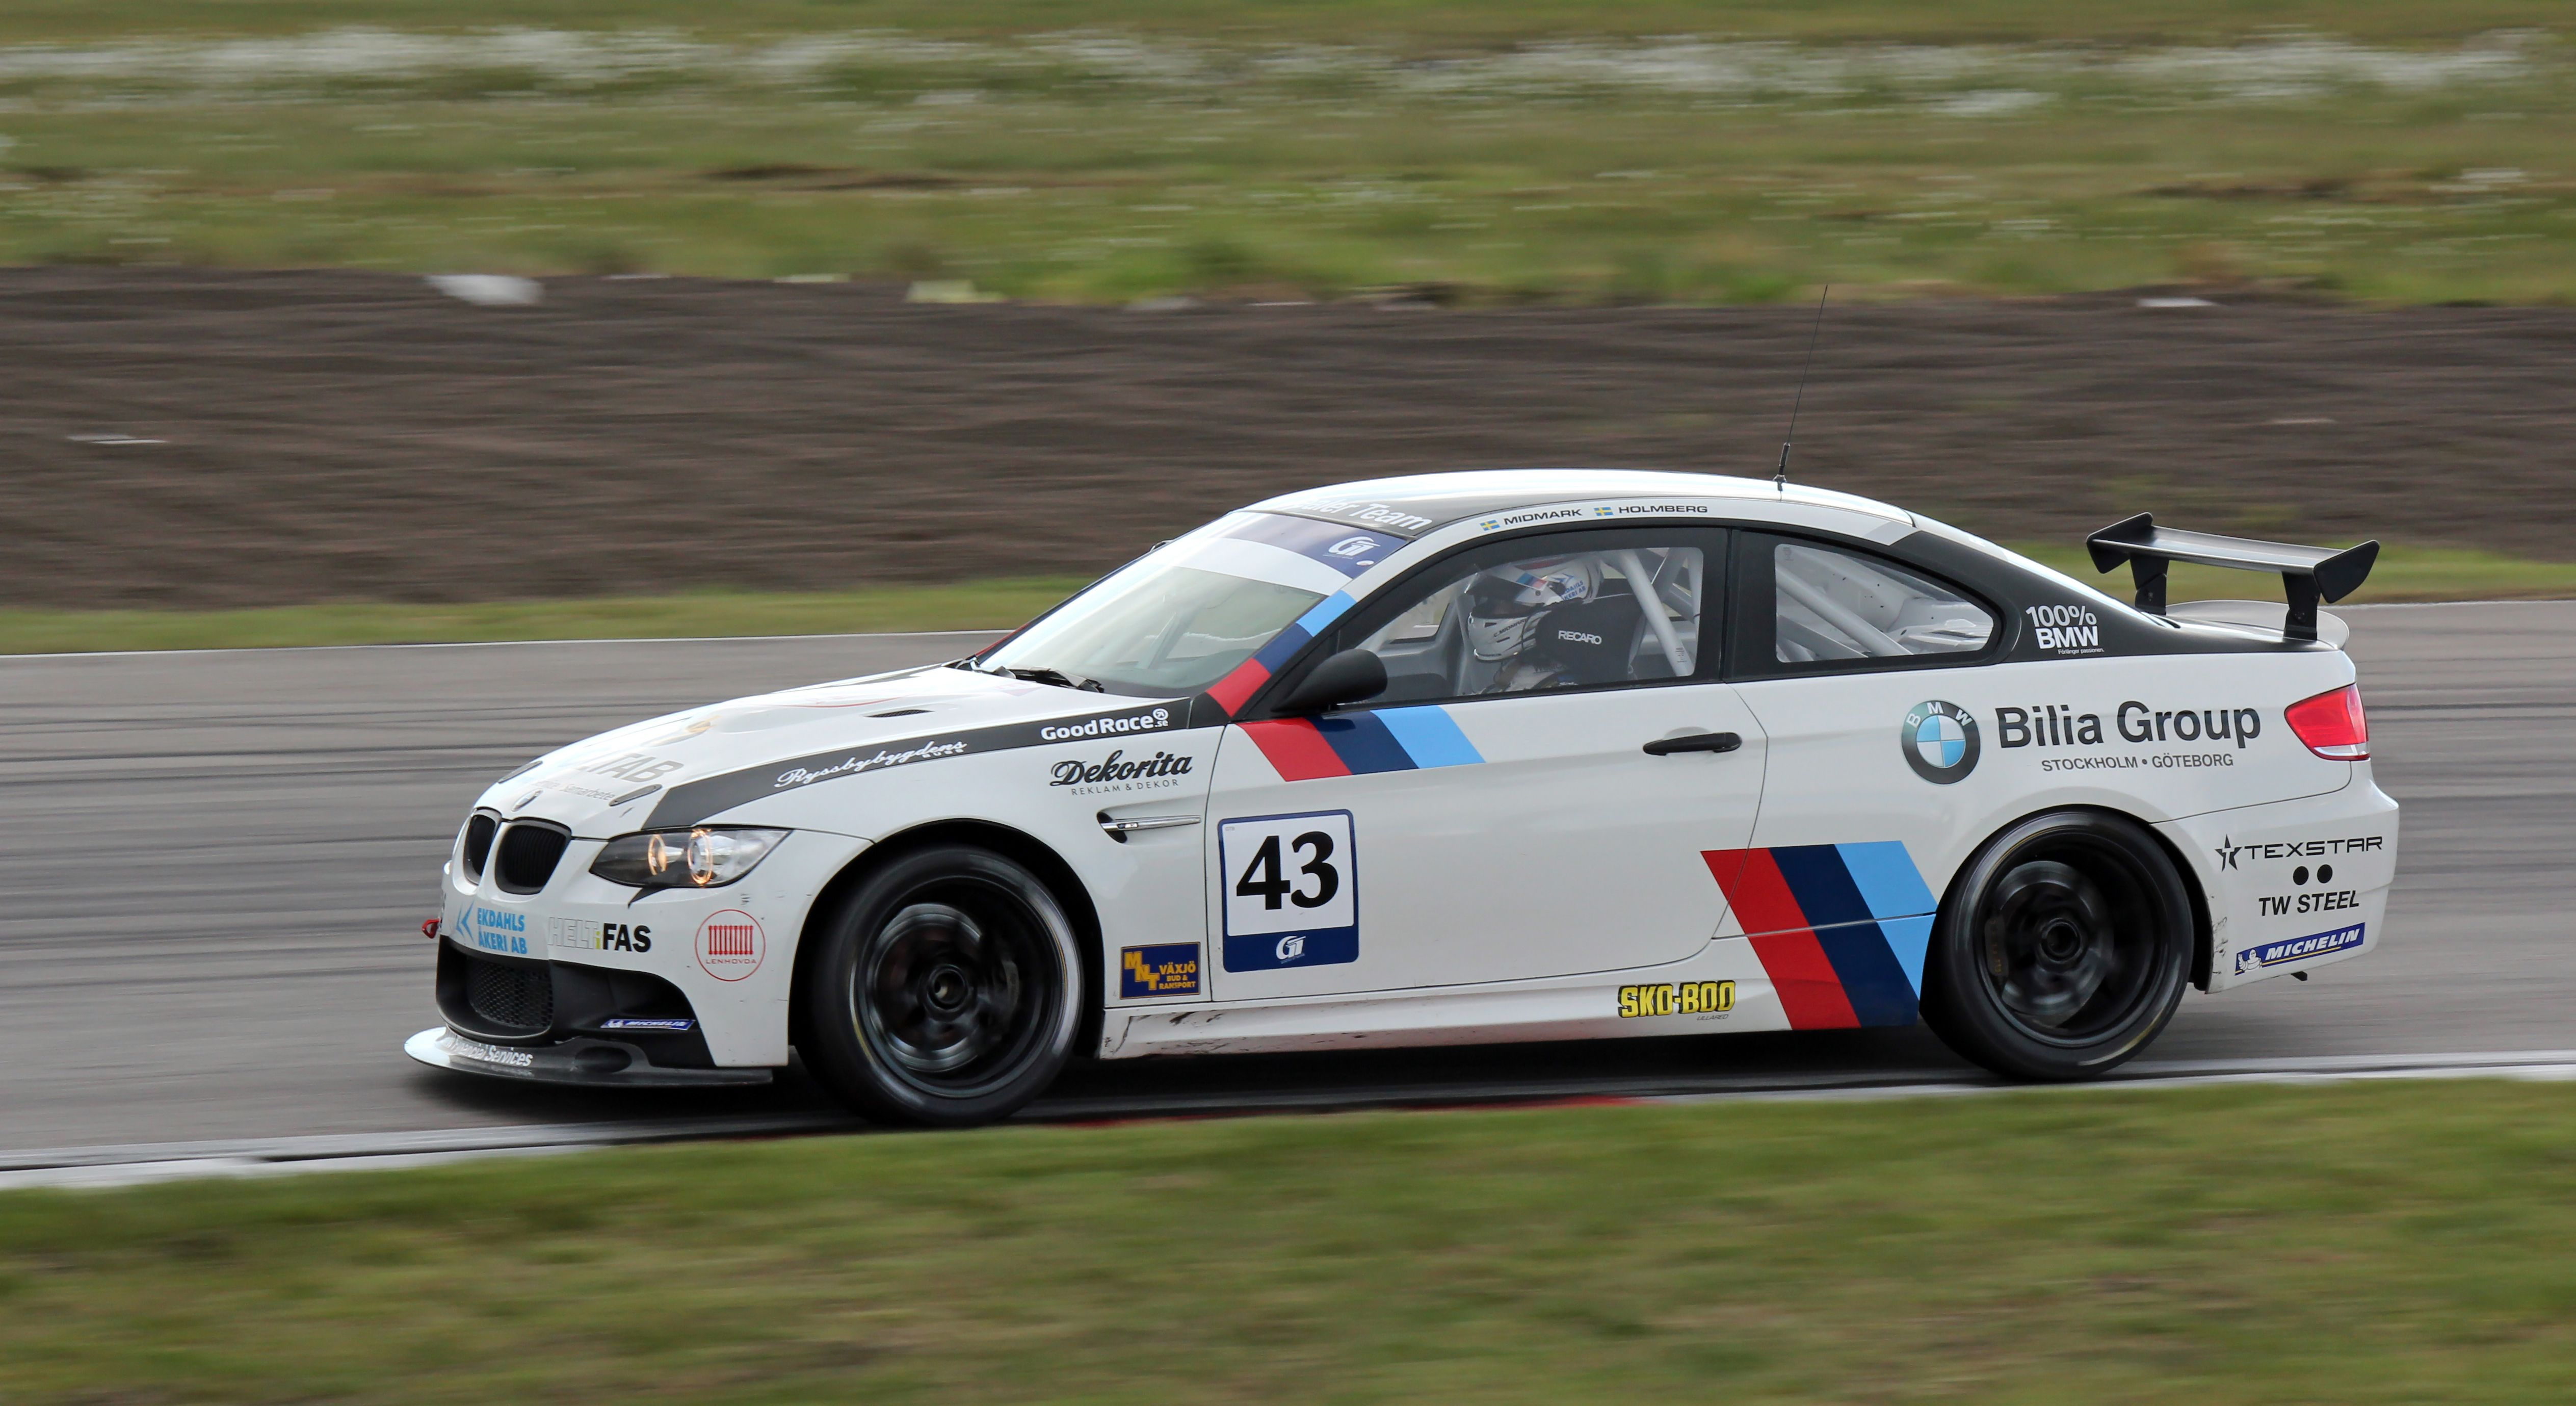 Bmw E92 M3 Gt4 With Images Bmw M3 Bmw Cars